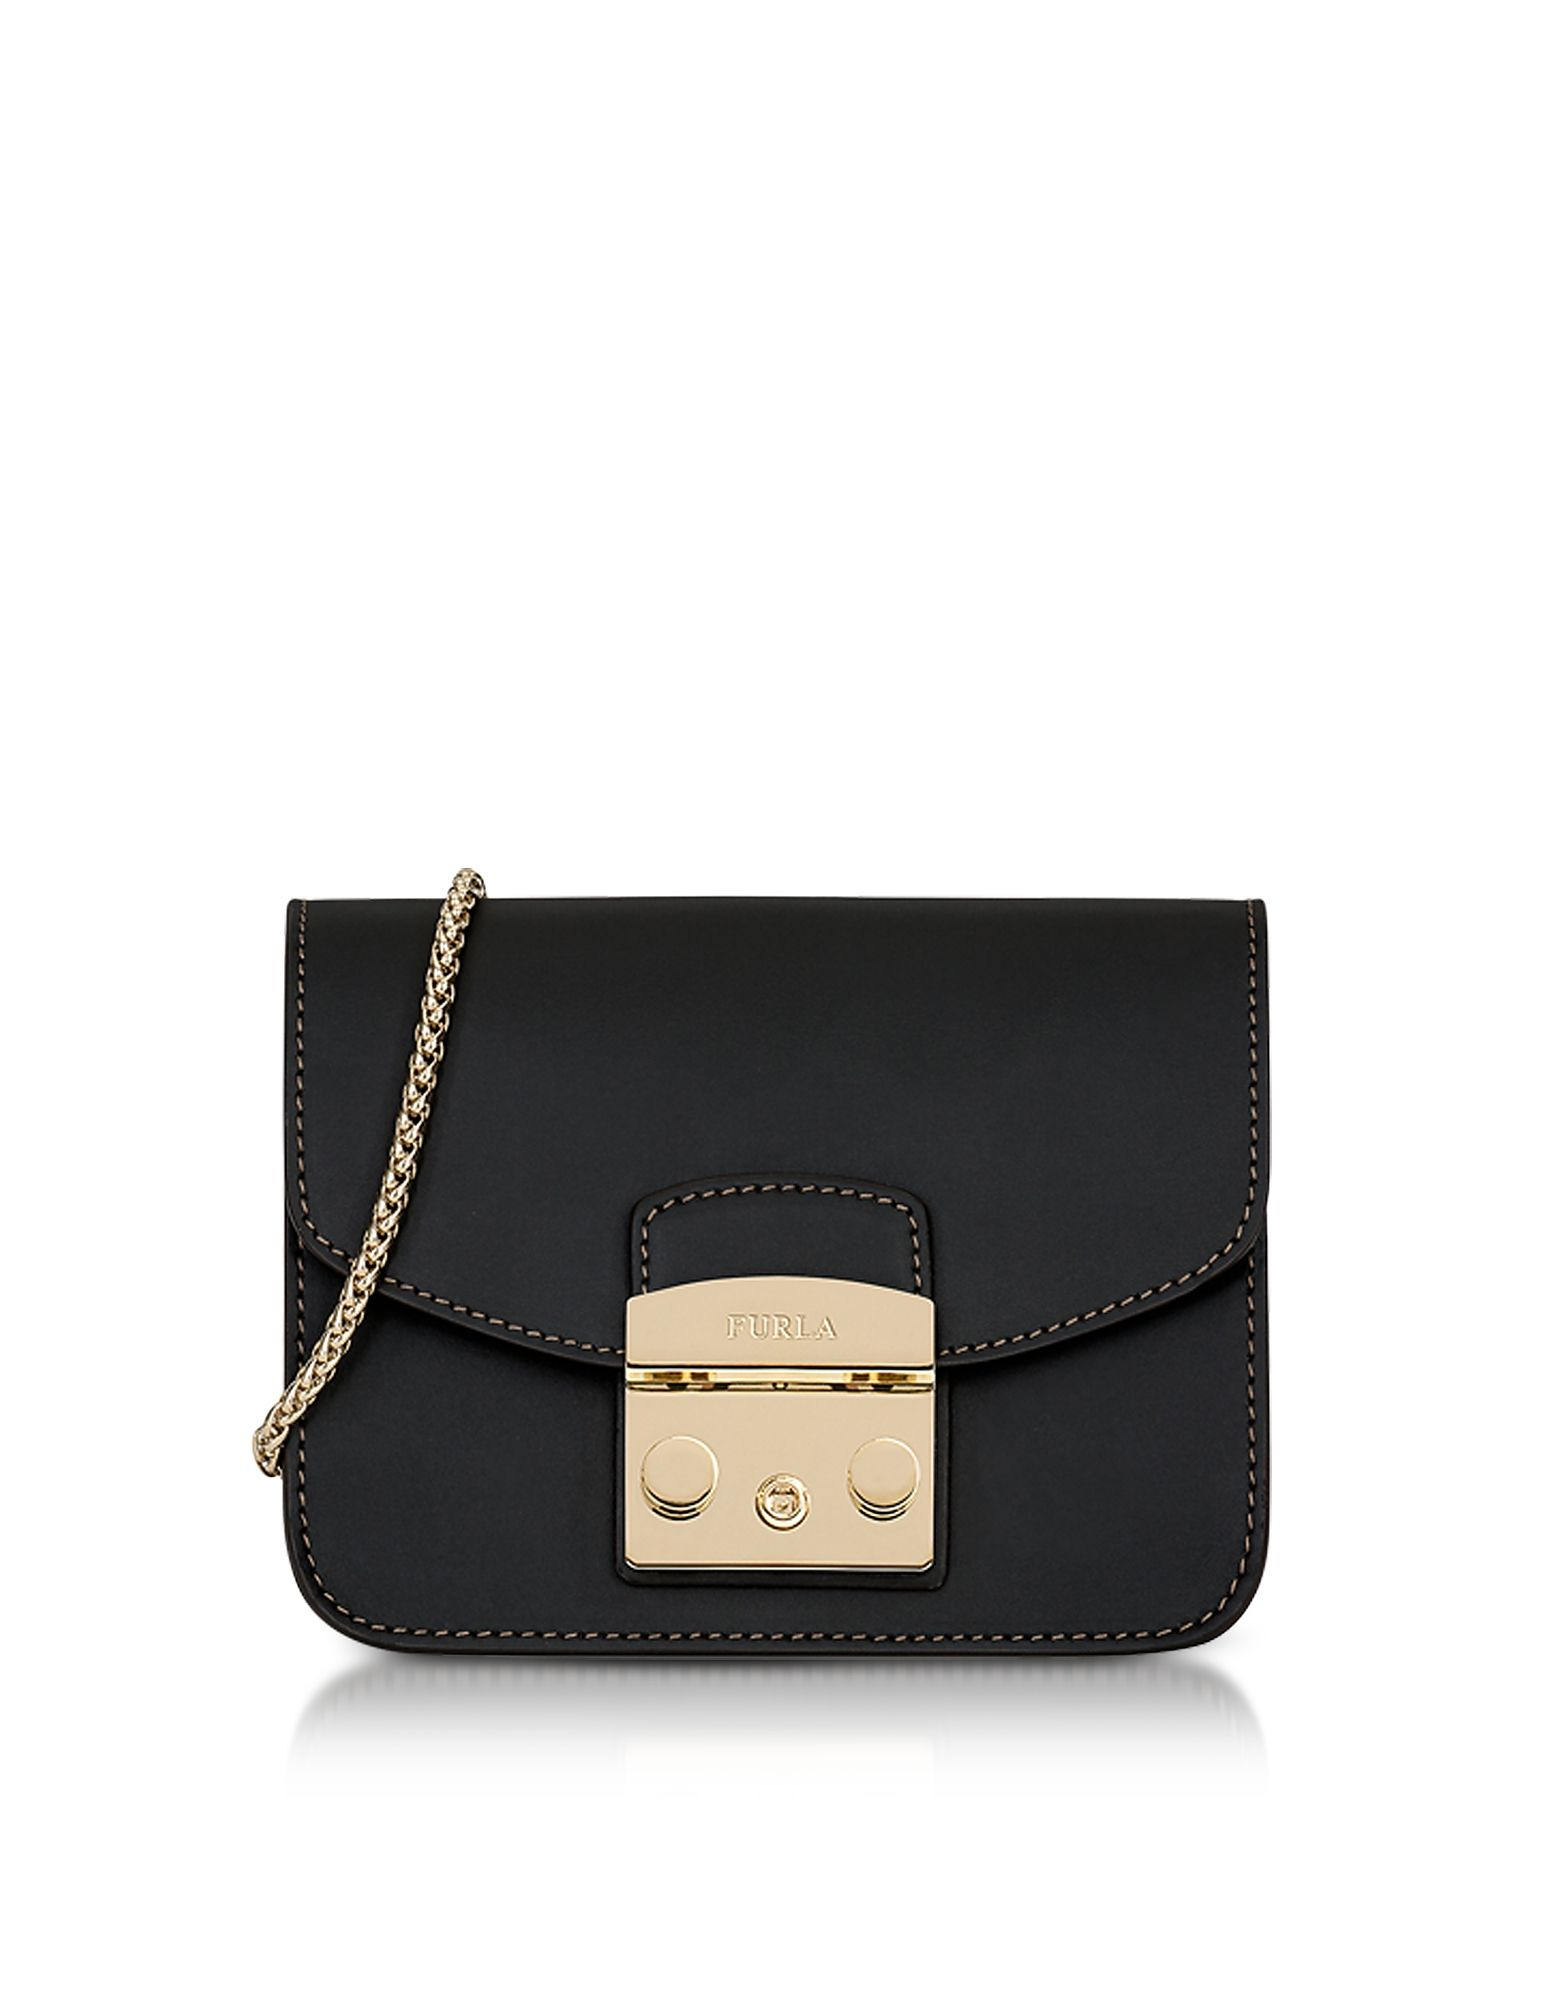 b6566c0ac823 FURLA BLACK SMOOTH LEATHER METROPOLIS MINI CROSSBODY BAG.  furla  bags   shoulder bags  leather  crossbody